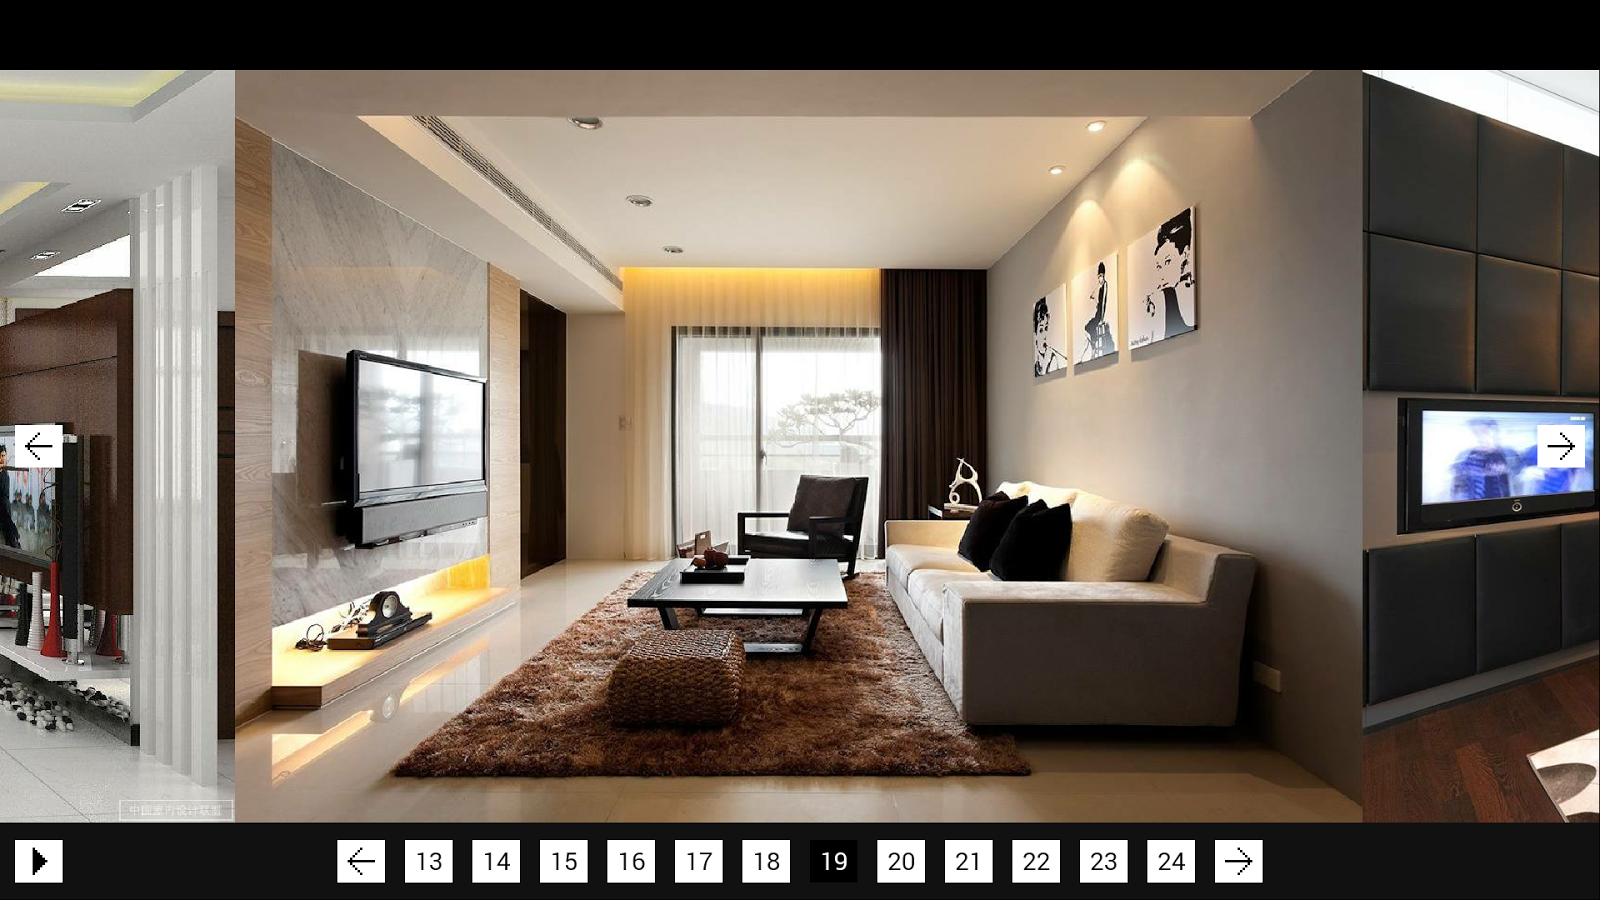 Home interior design android apps on google play for Best home interior design